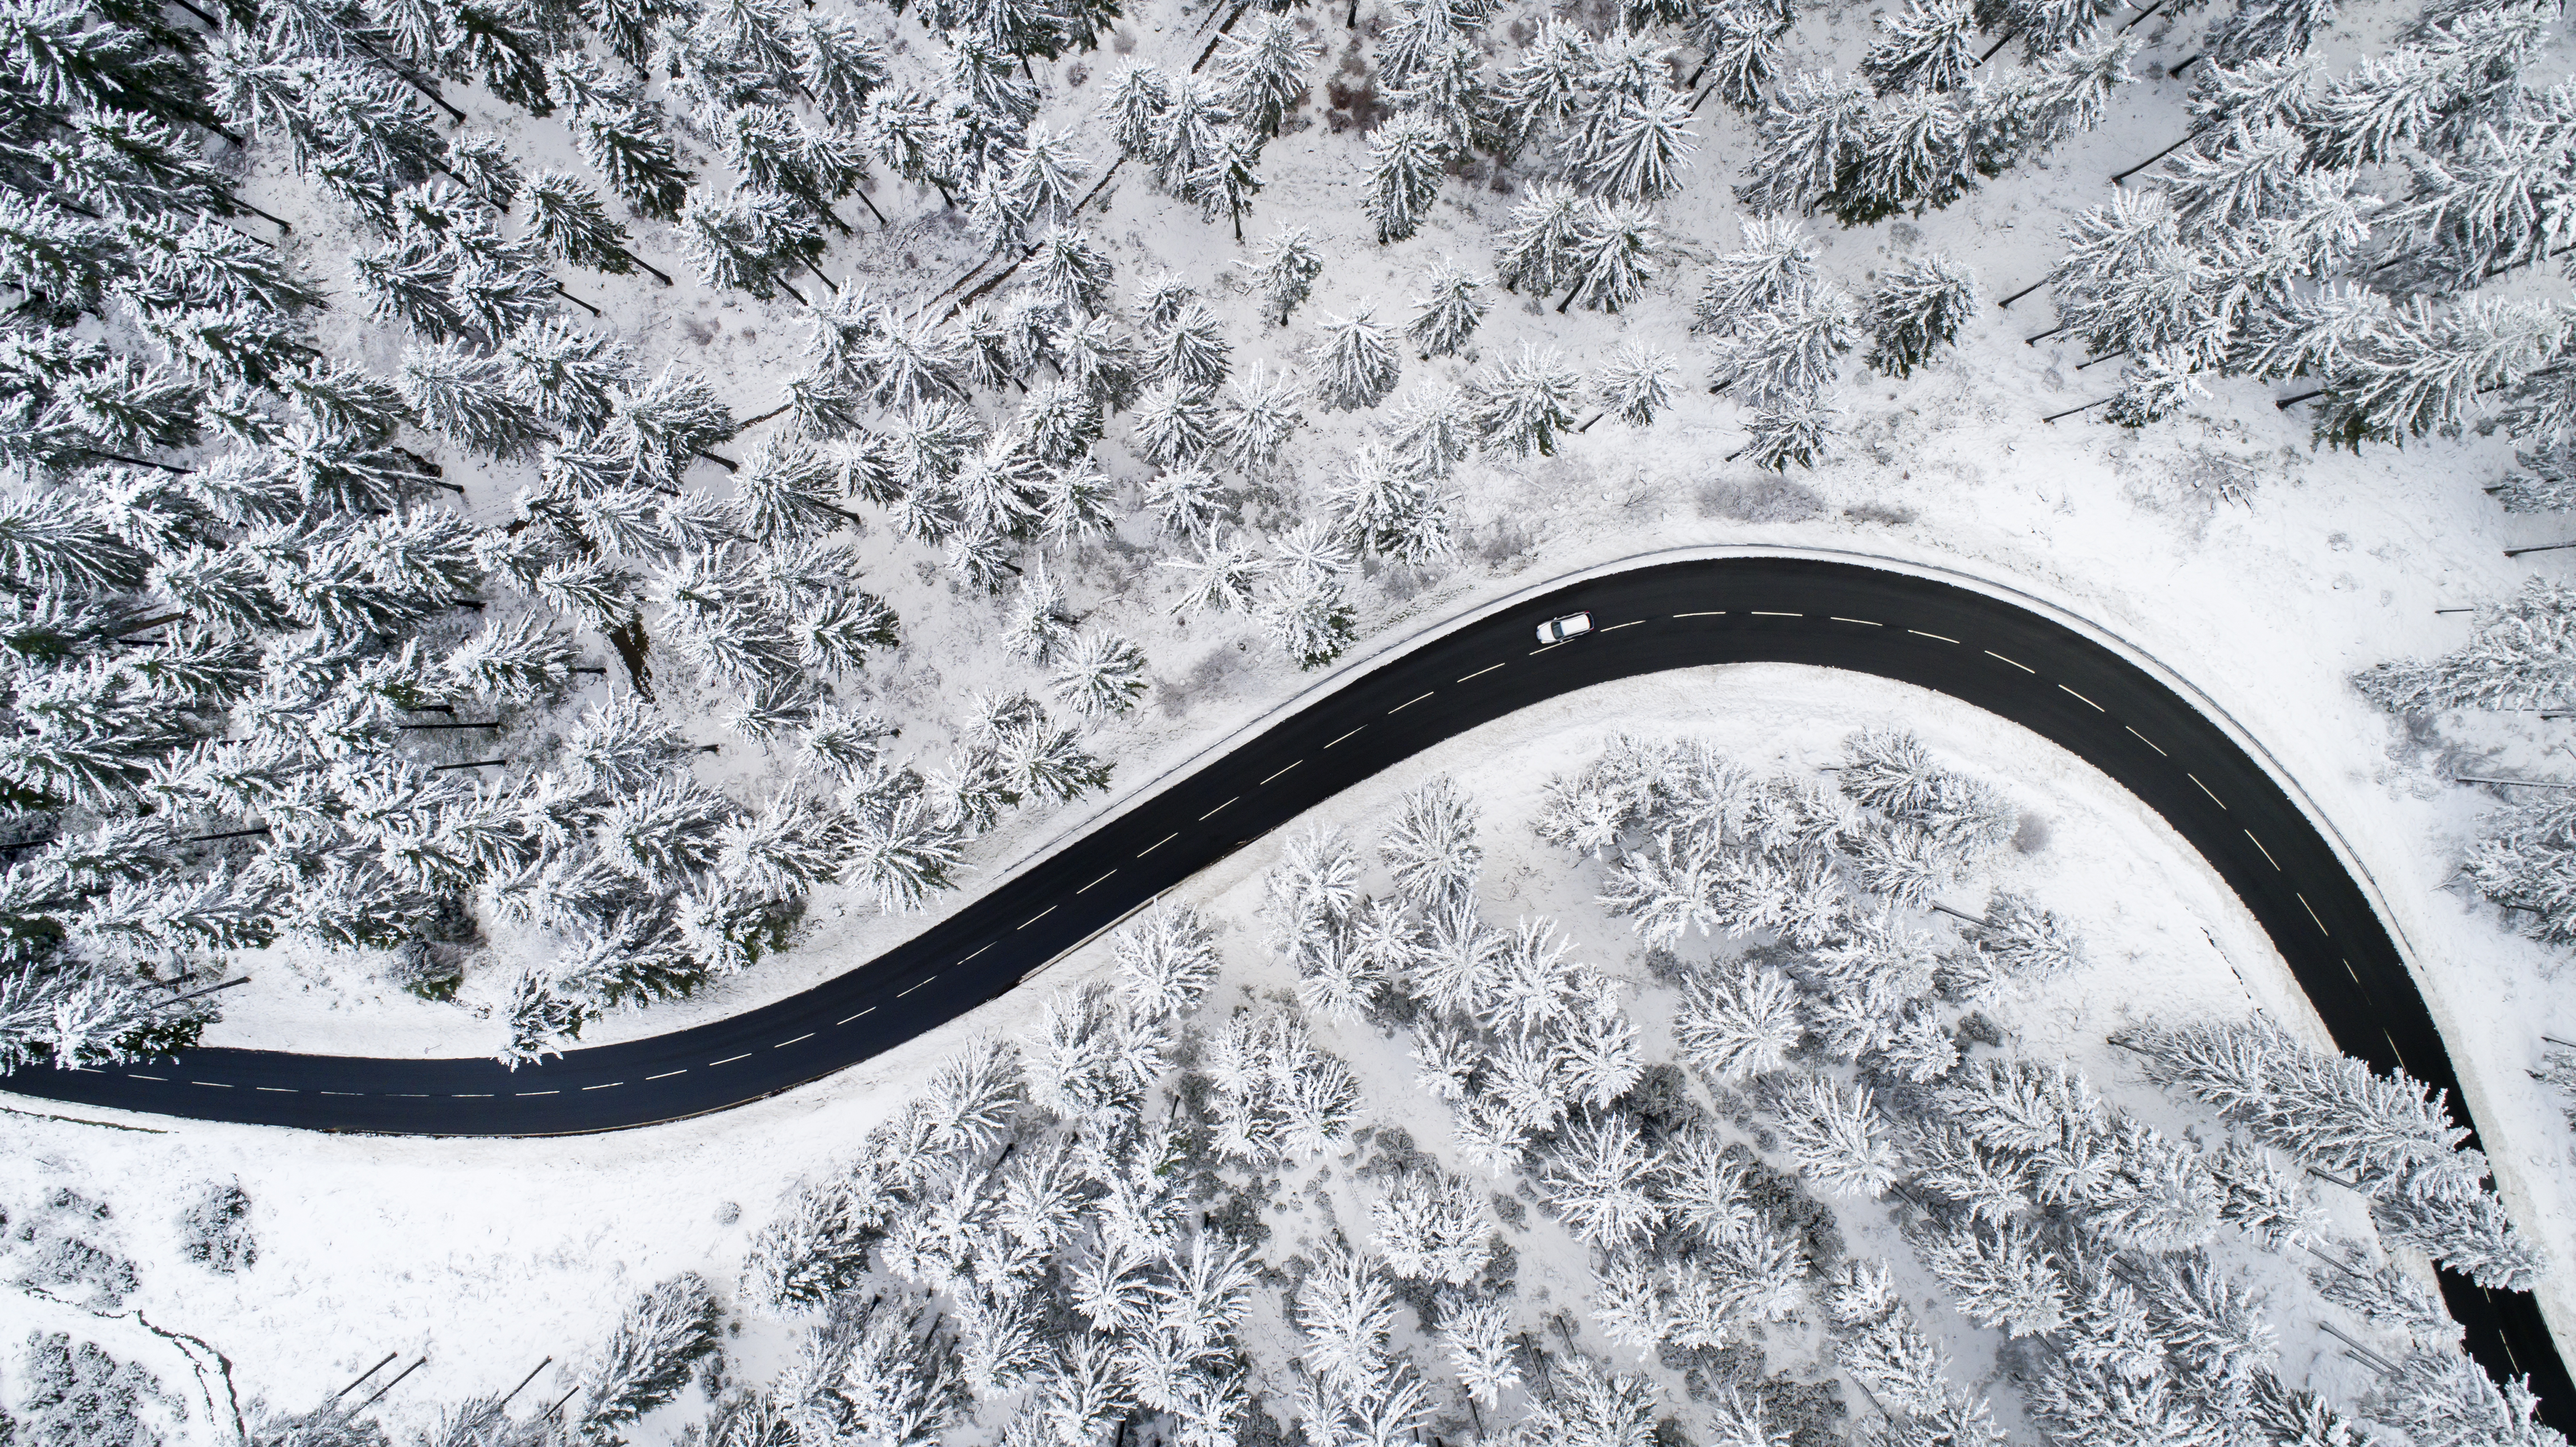 Car driving on road through snowy forest